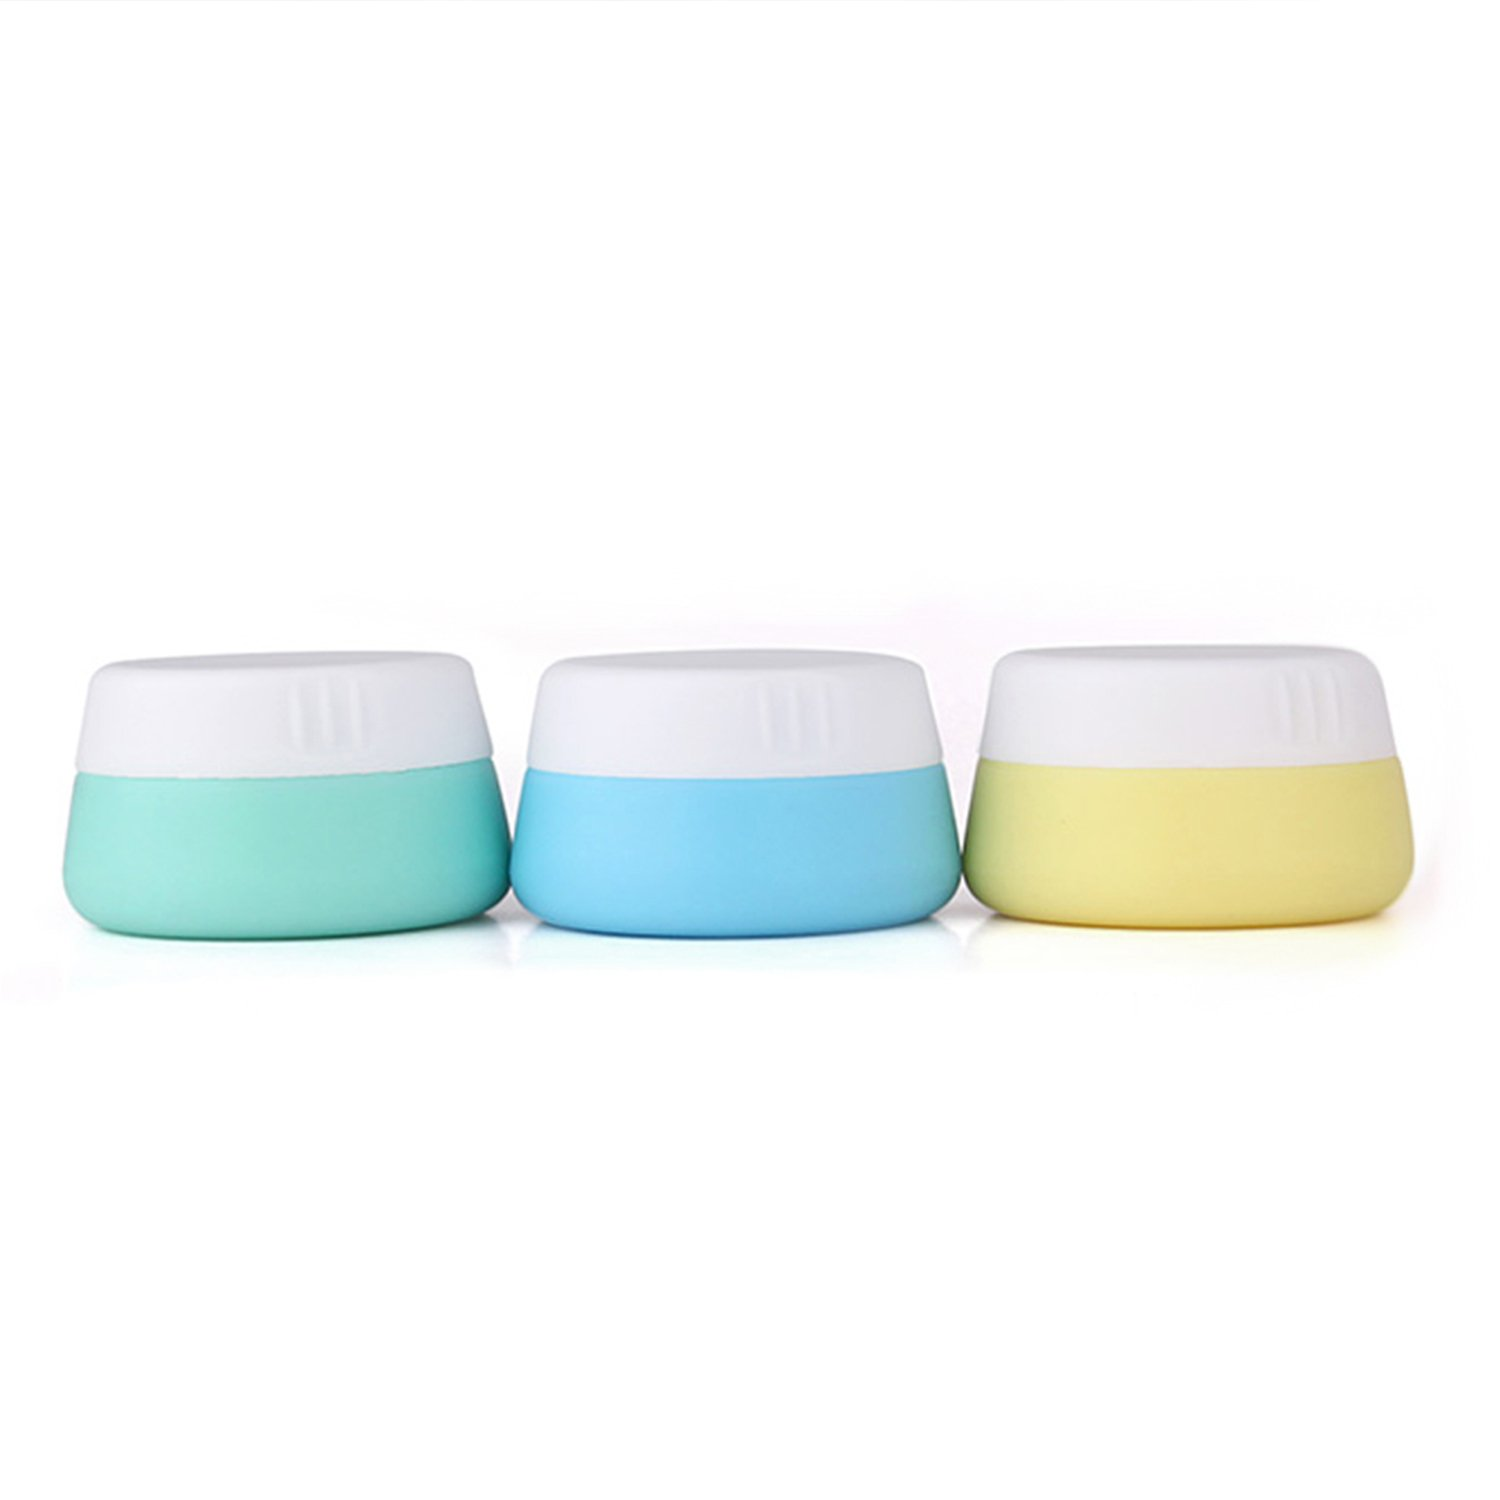 Mudder Silicone Cosmetic Containers Cream Jar with Sealed Lids, 3 Pieces (20 ml)